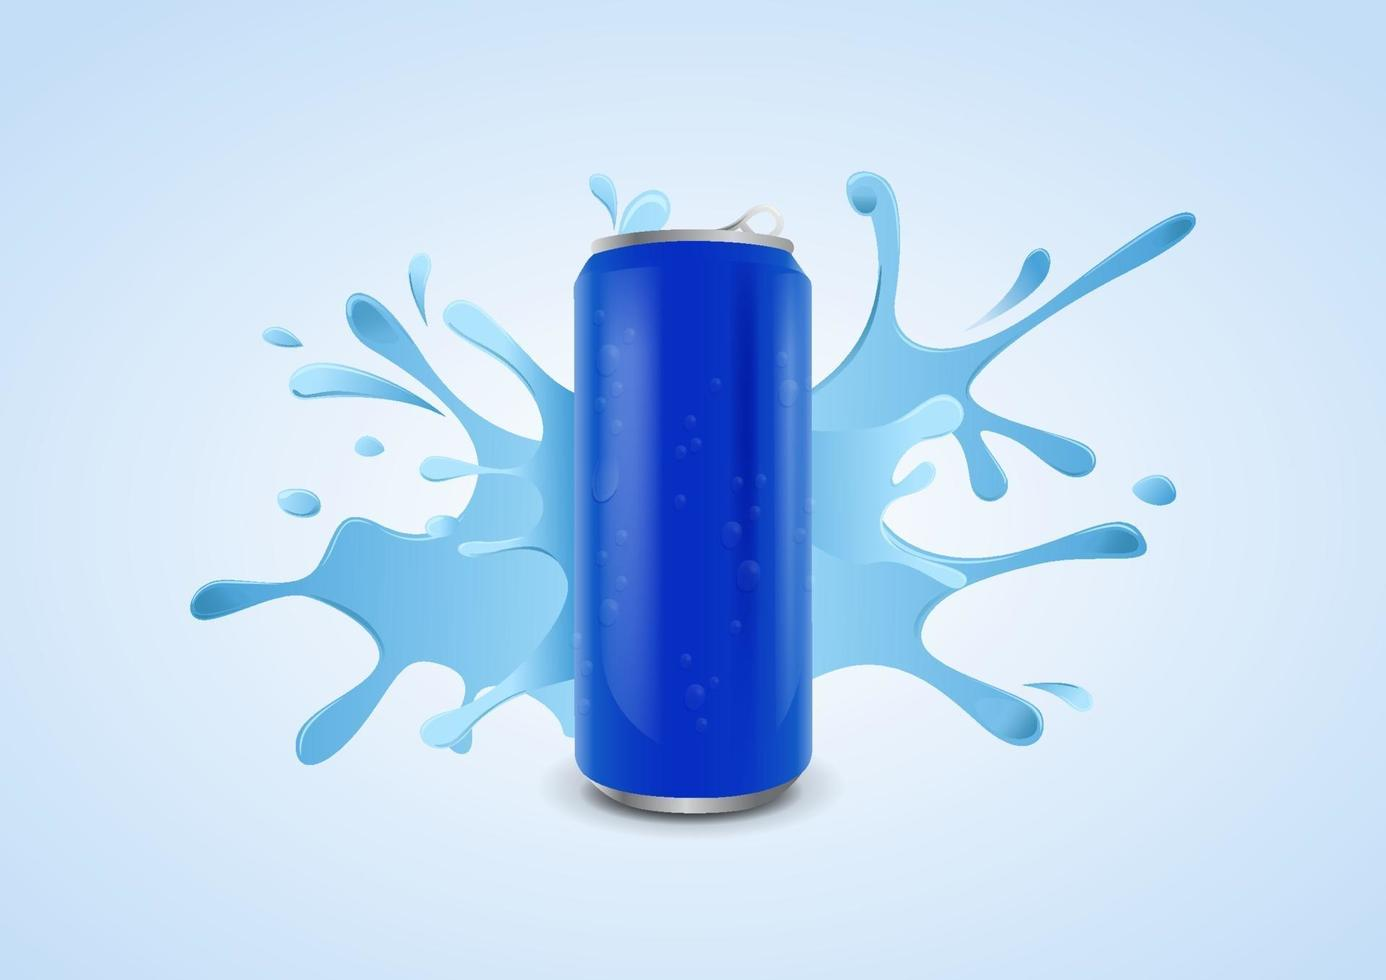 Blue ice cold soda can with water drops on splashing water background, vector illustration